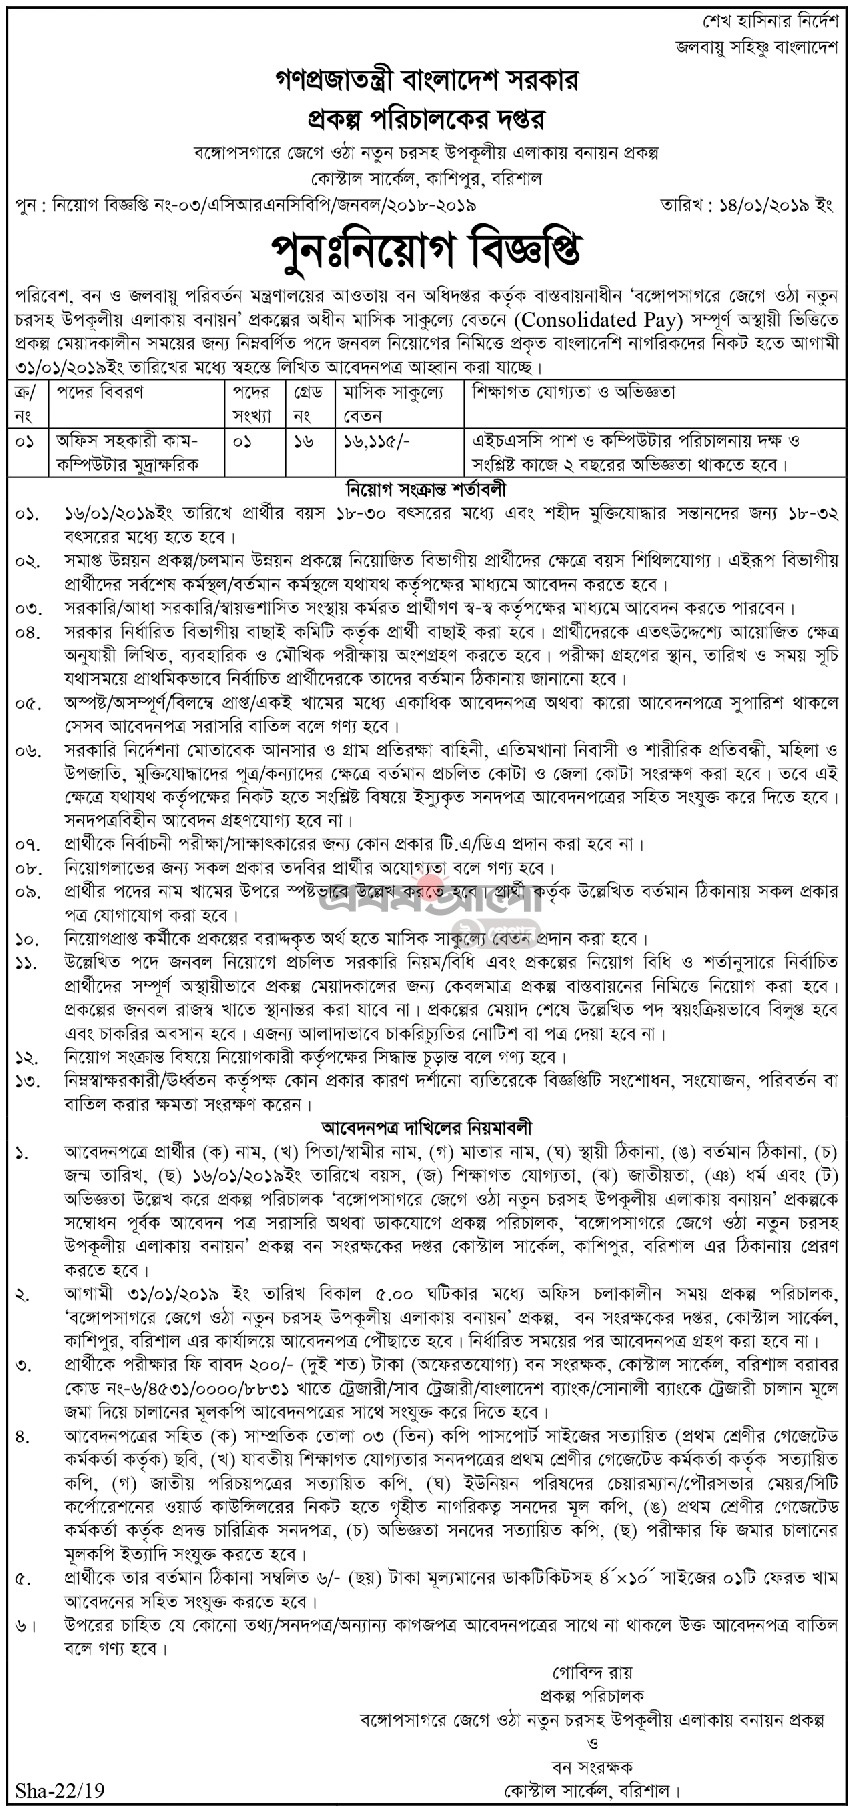 Ministry of Environment & Forests Job Circular 2019